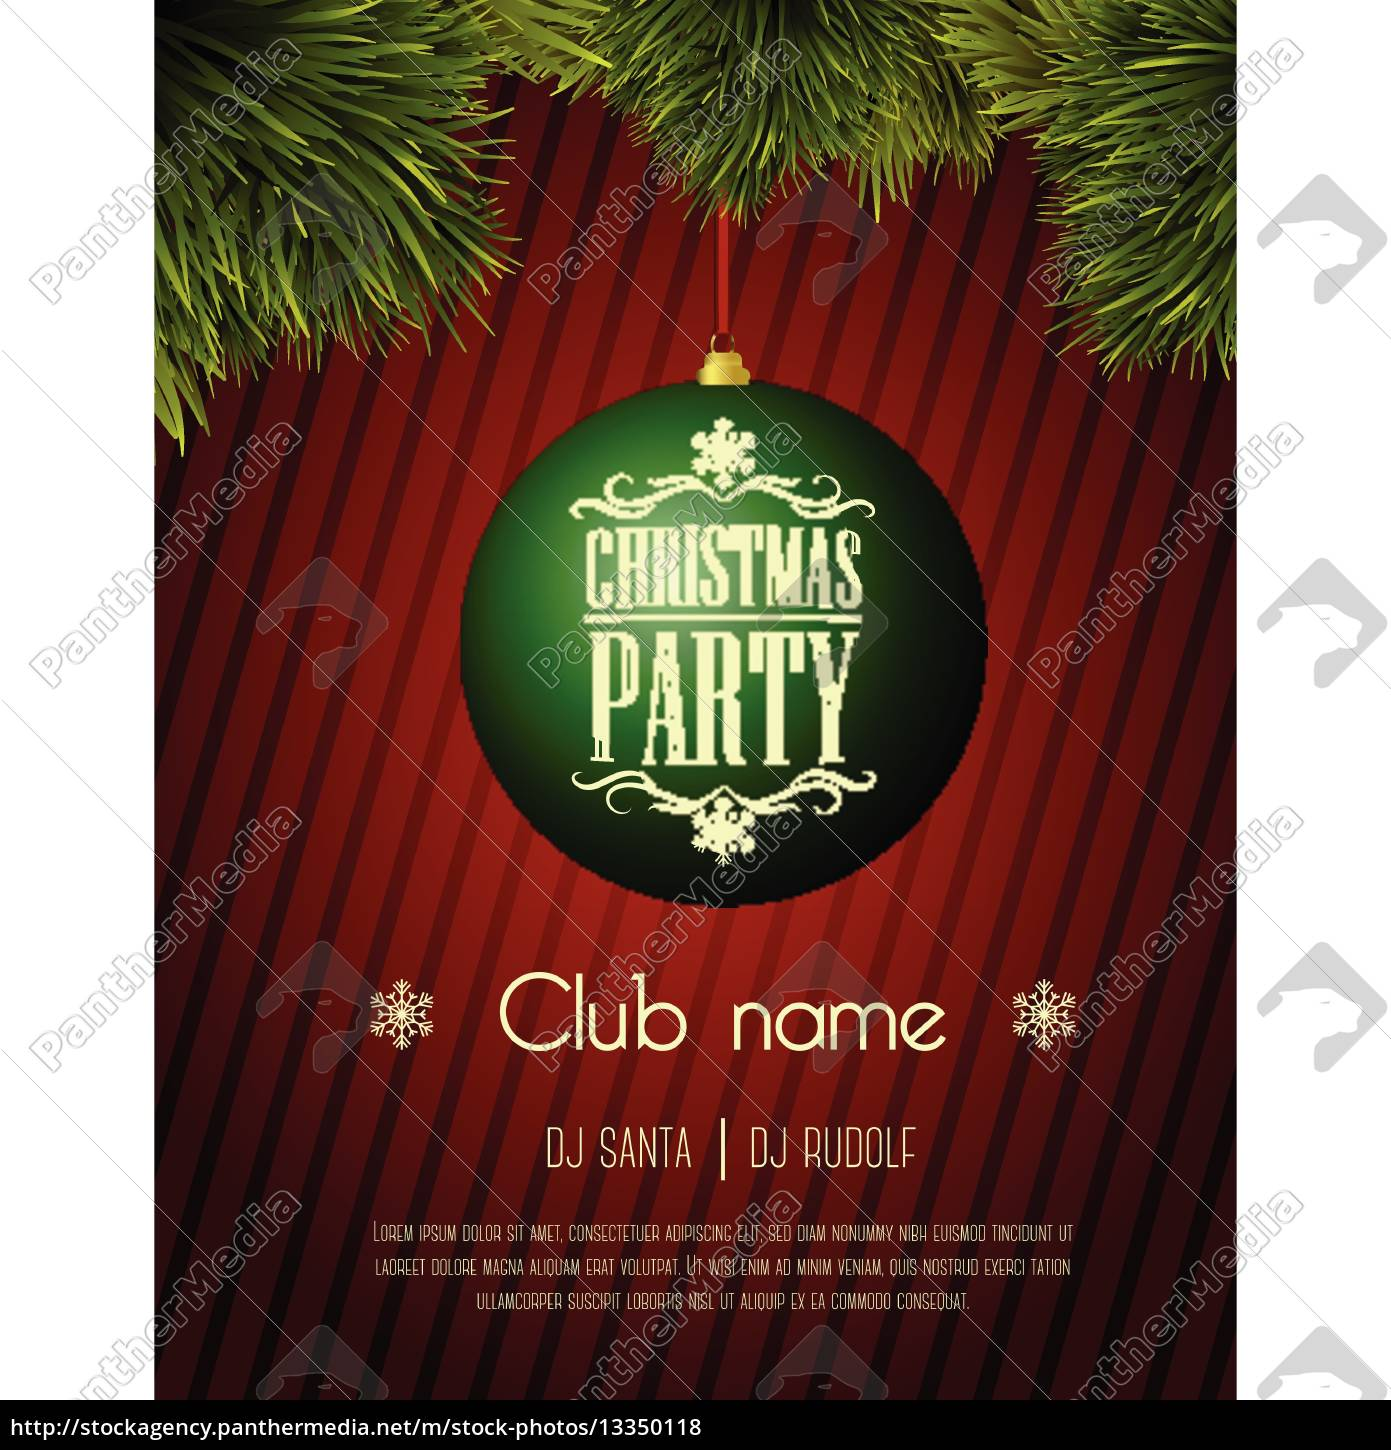 Christmas Party Flyer Template.Royalty Free Vector 13350118 Christmas Party Flyer Template Green Bauble On A Red